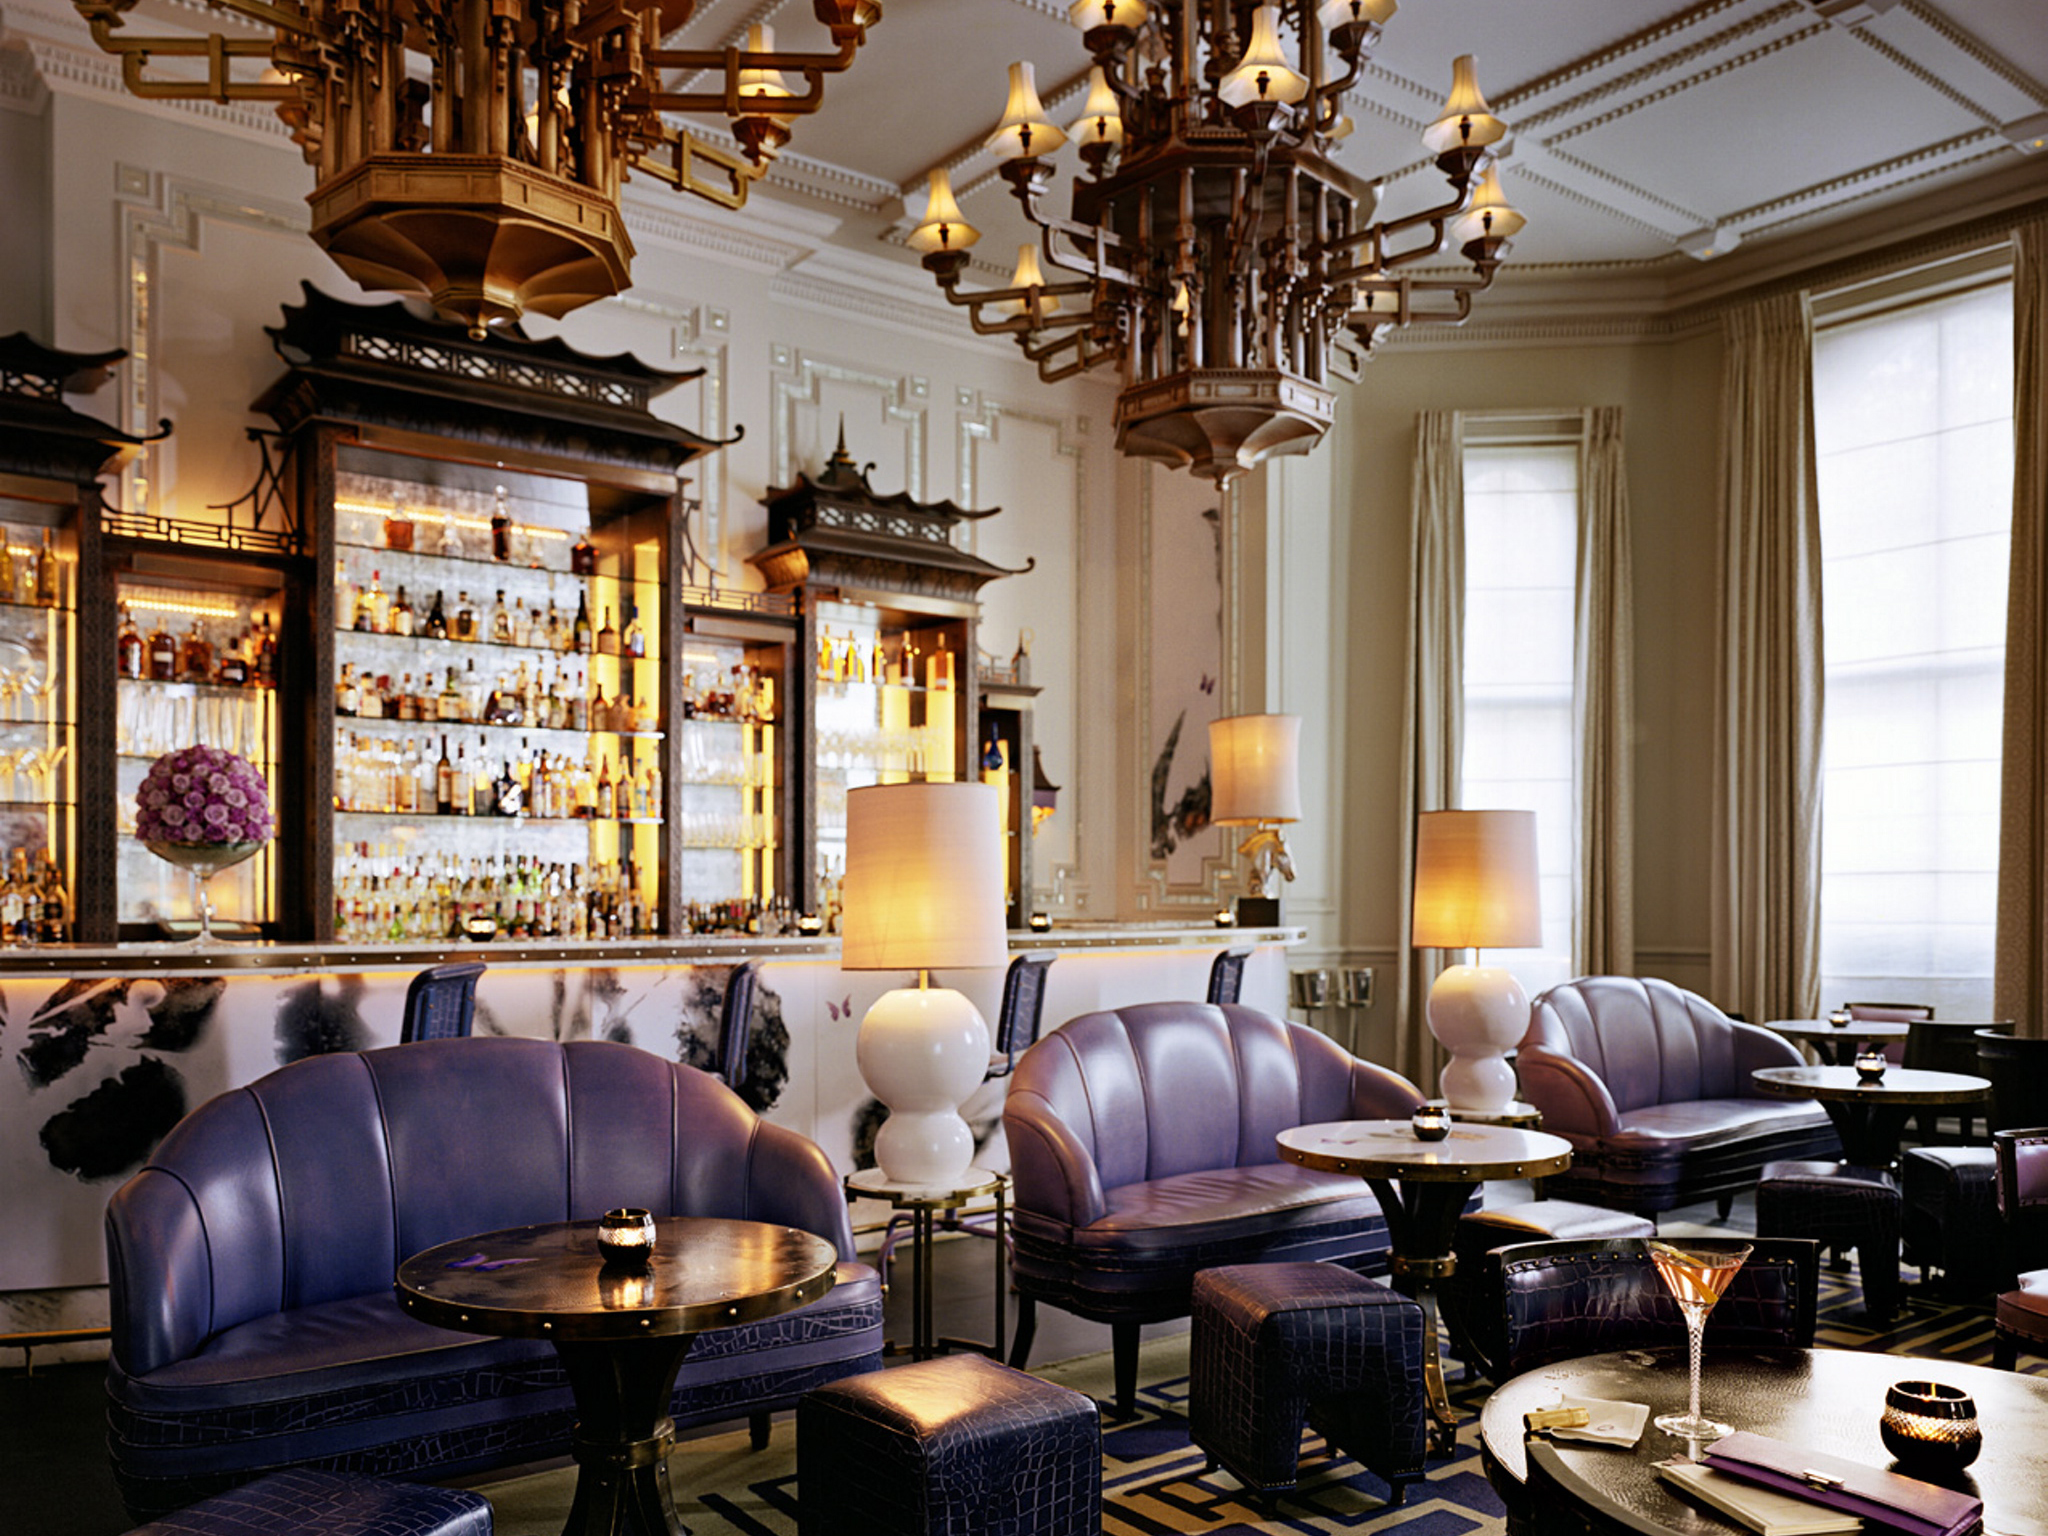 Hotel bars in London - Time Out London